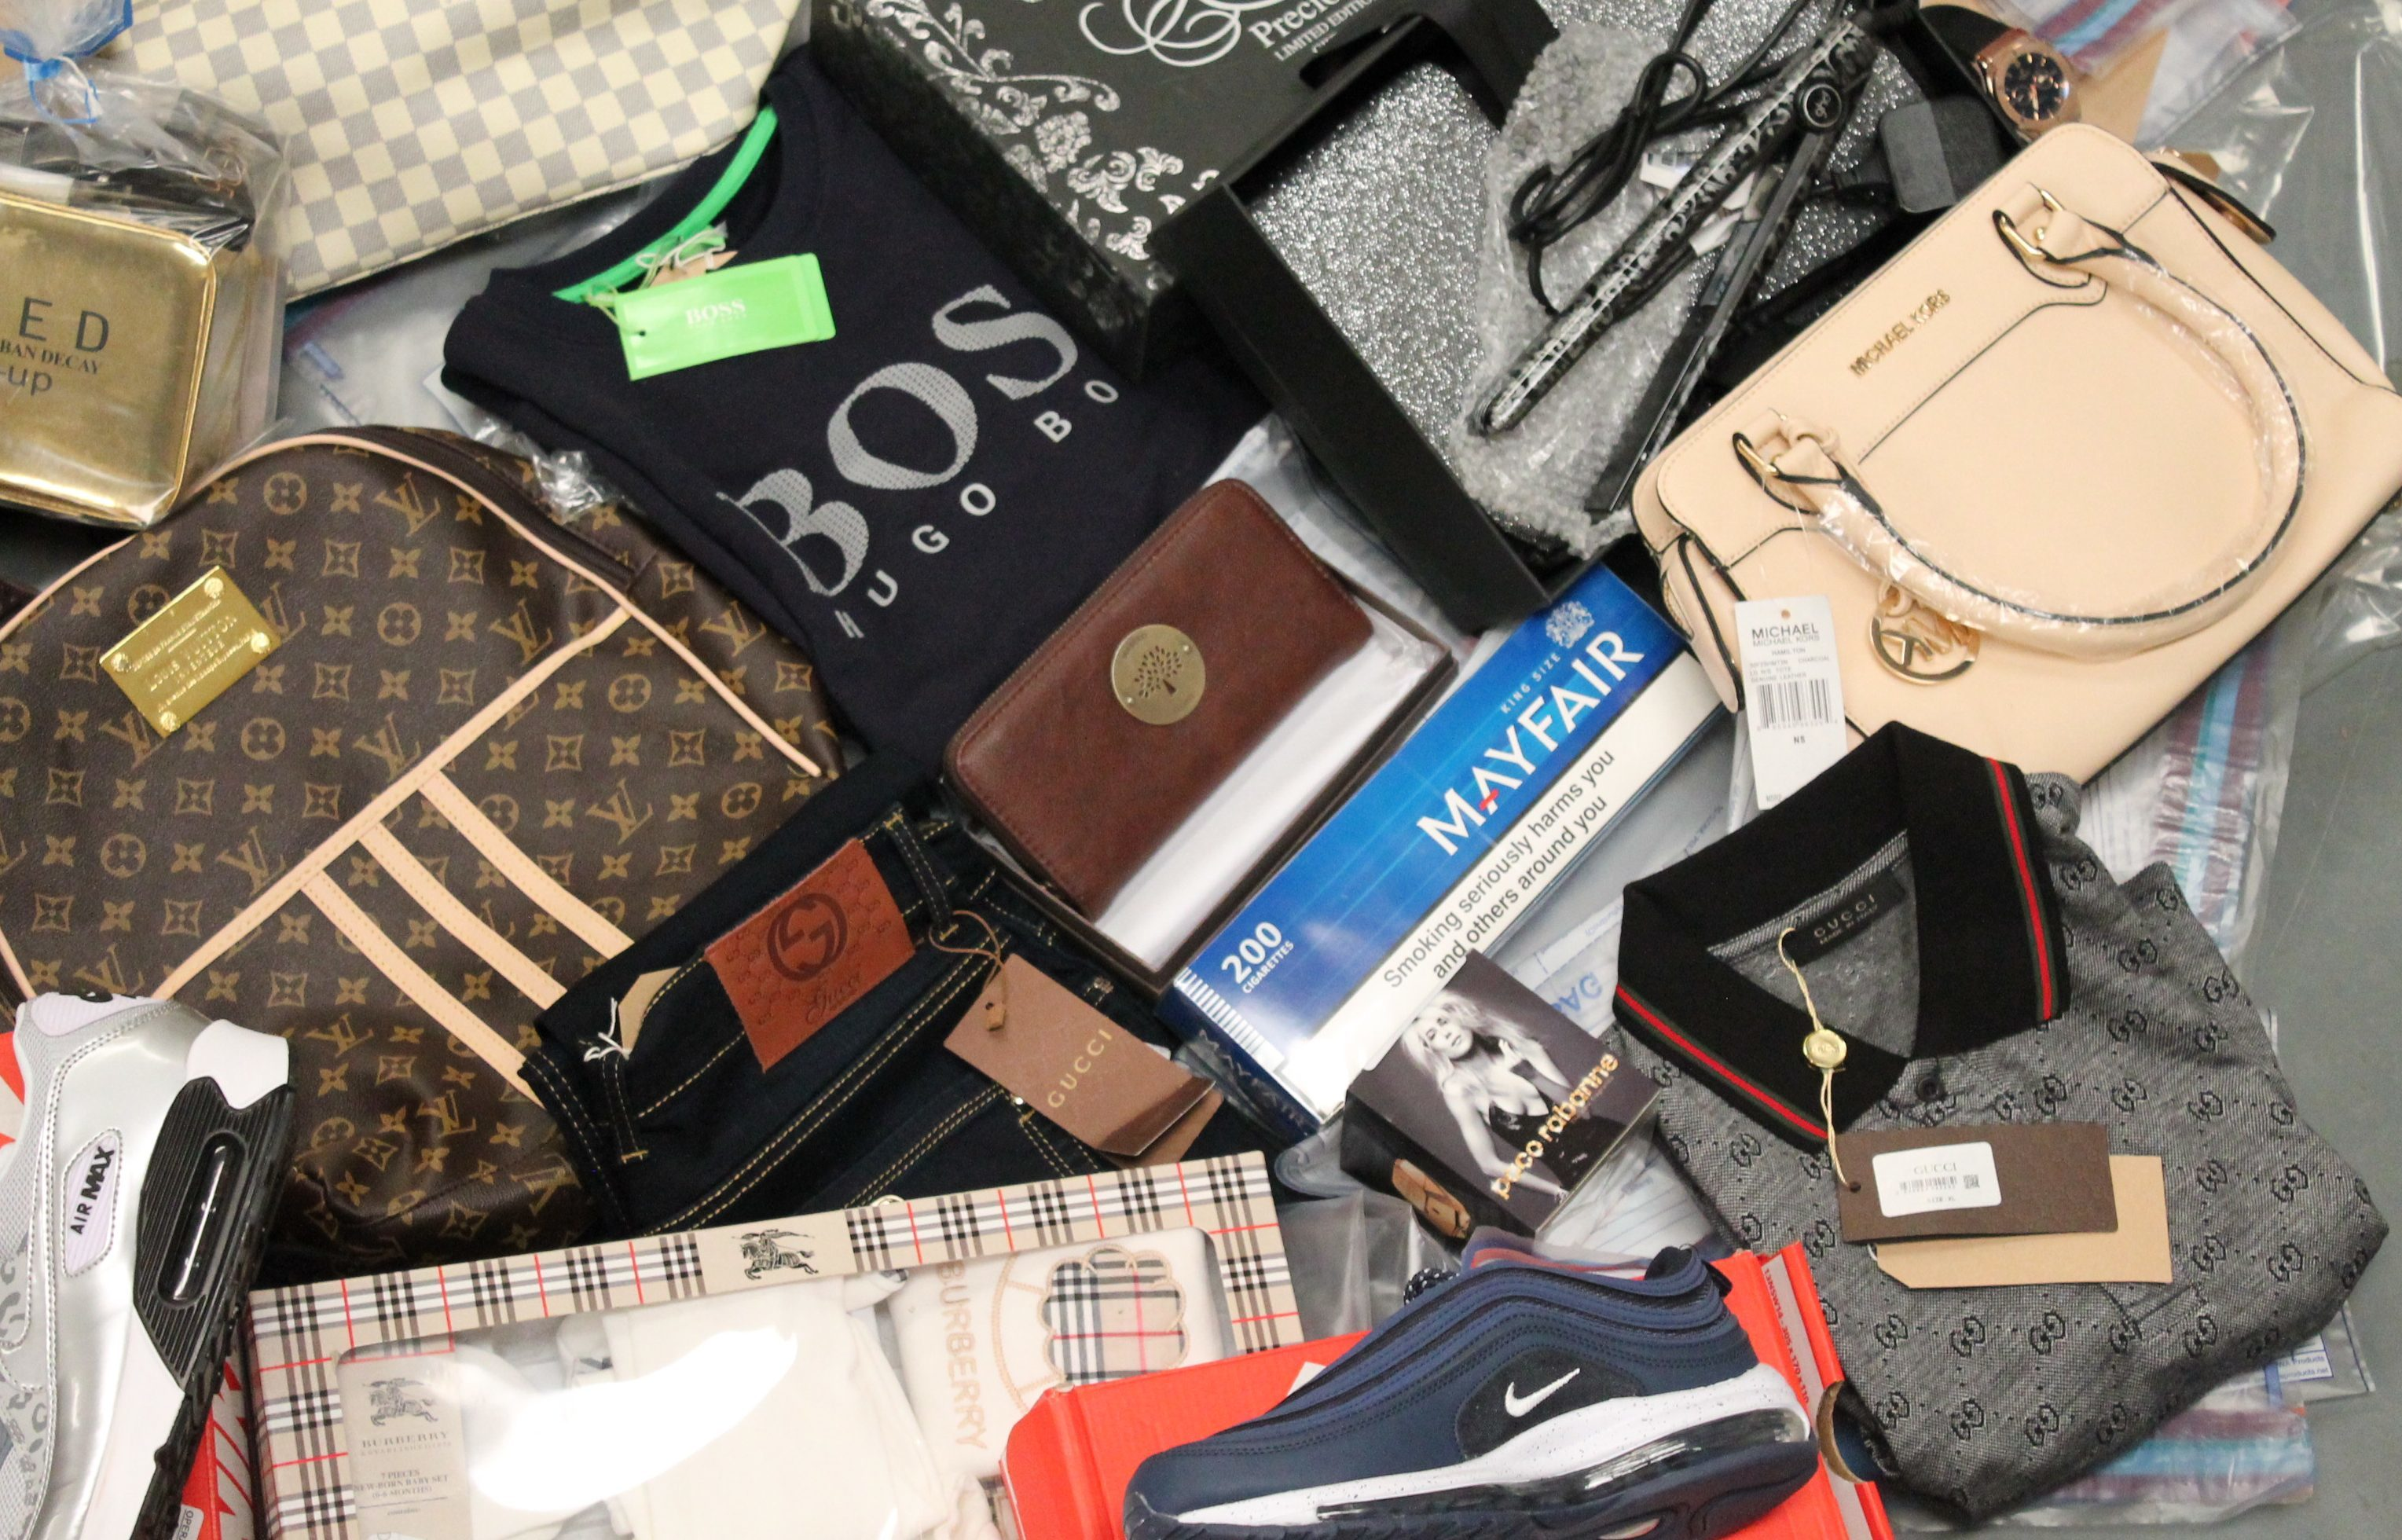 Some of the fake goods removed from premises in the Fife raids.